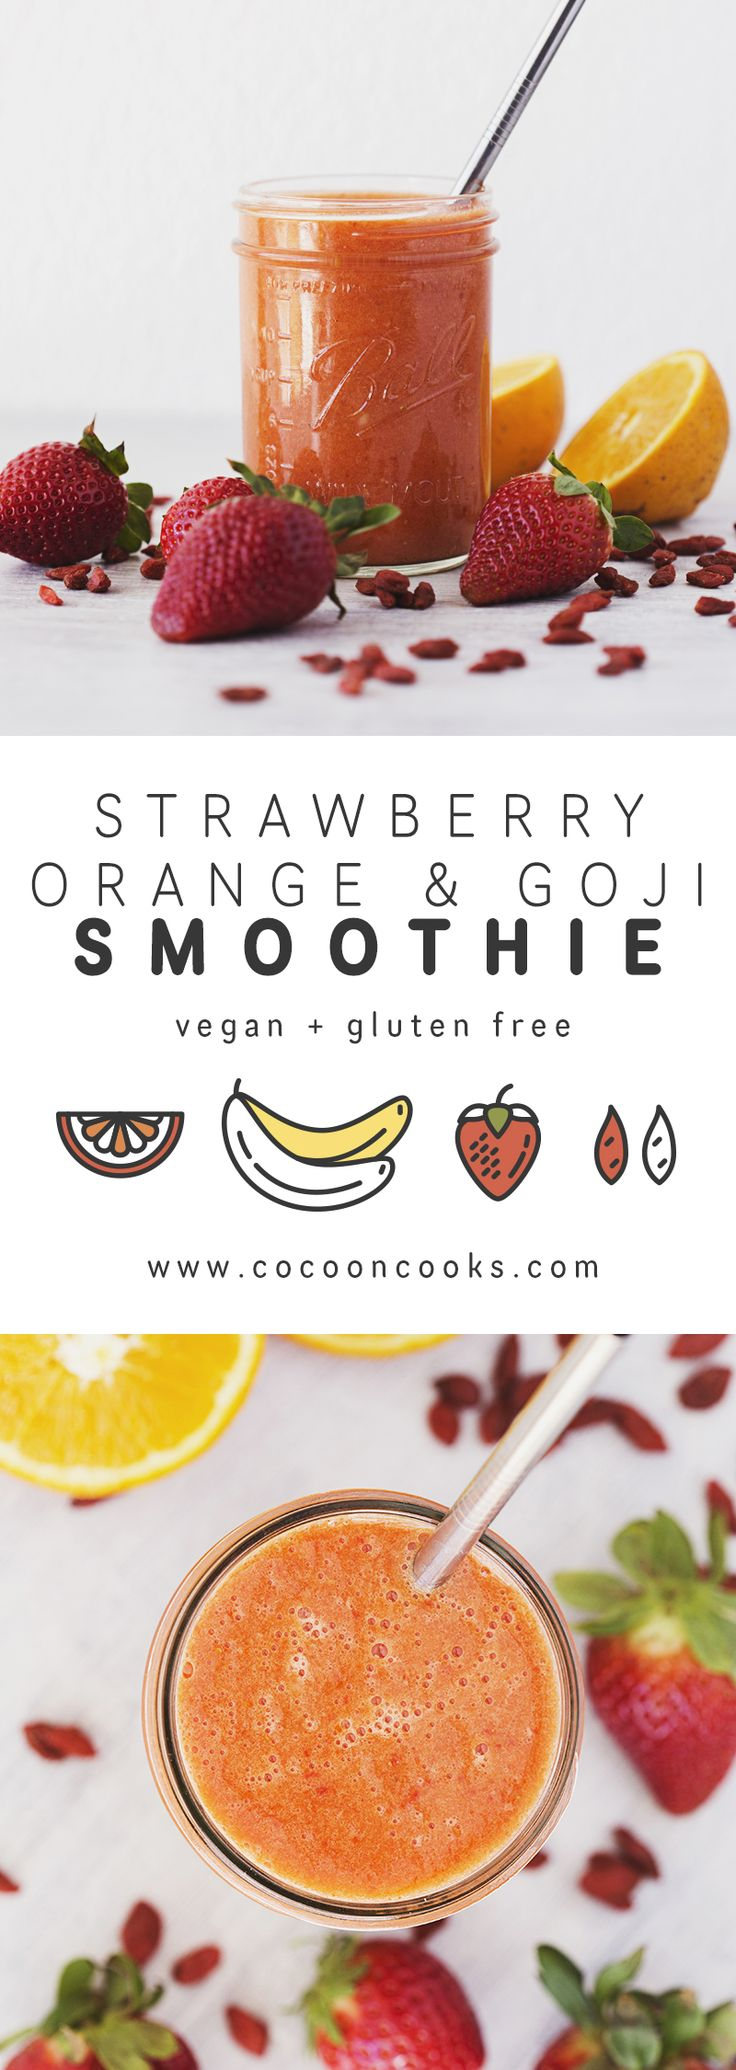 A deliciously sweet Strawberry, Orange & Goji Smoothie. #vegan #recipe #healthy